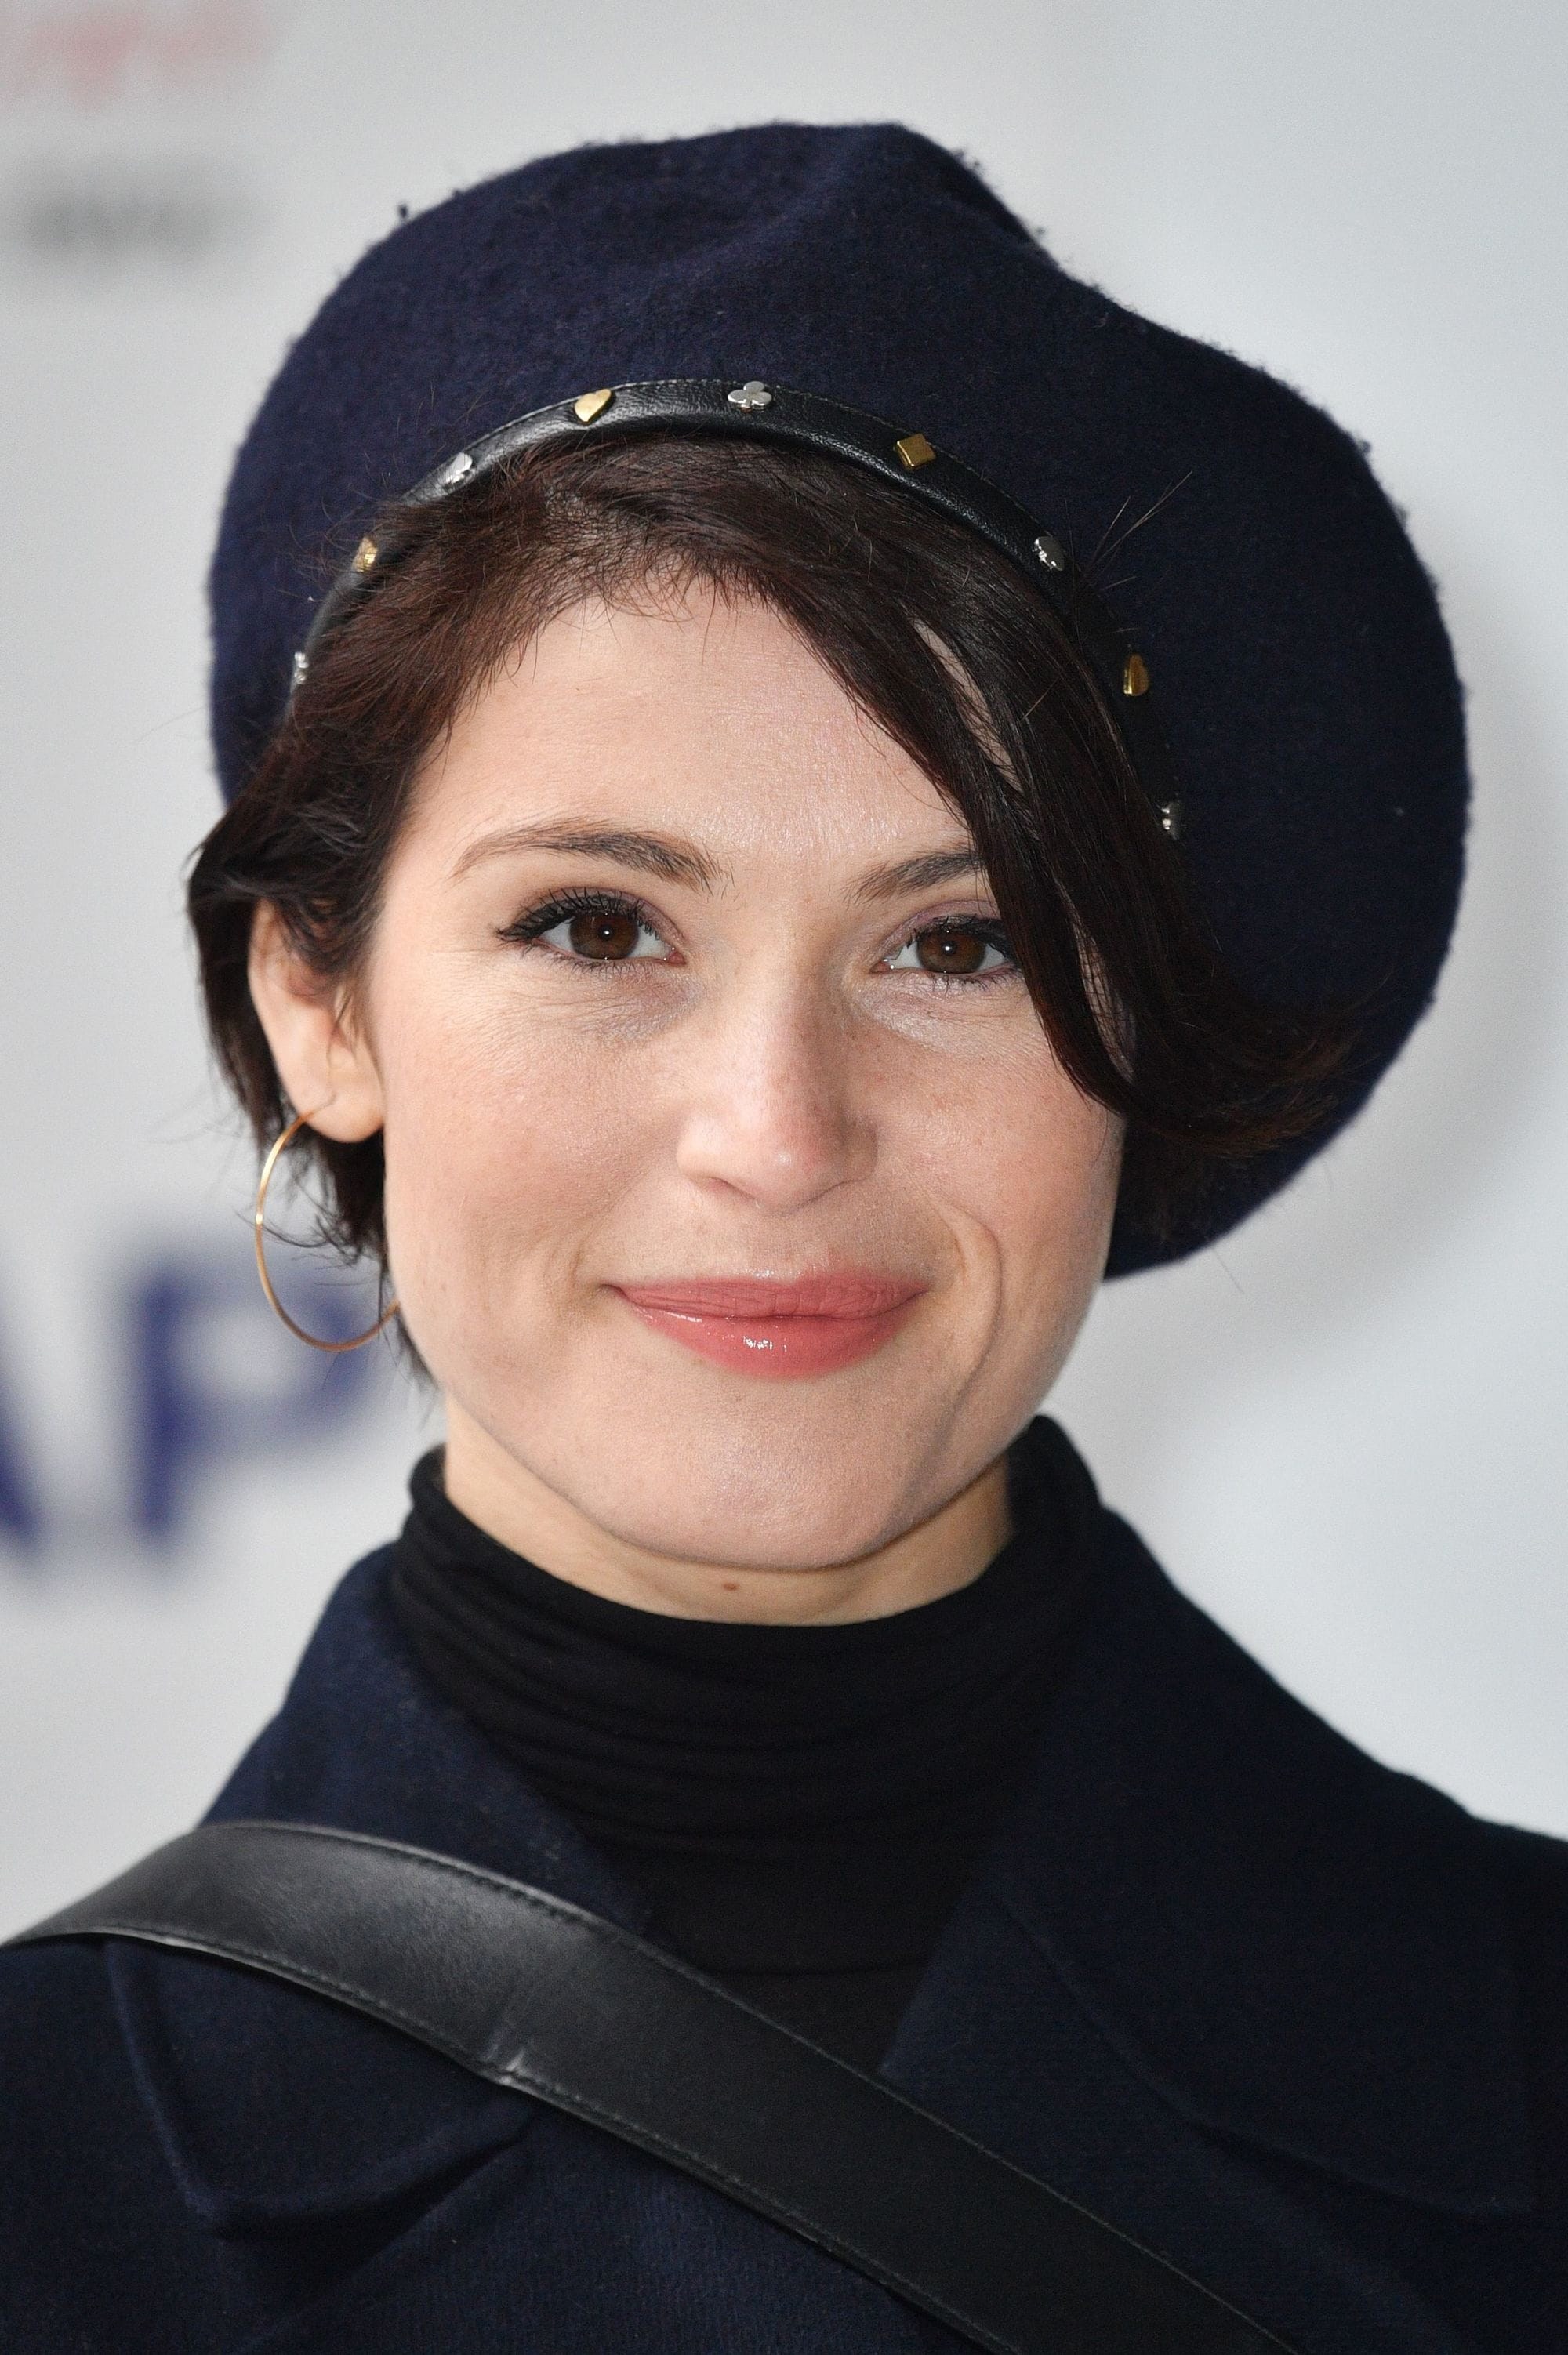 close up shot of gemma arterton with sleek pixie and beret hairstyle, posing and wearing all black on the red carpet